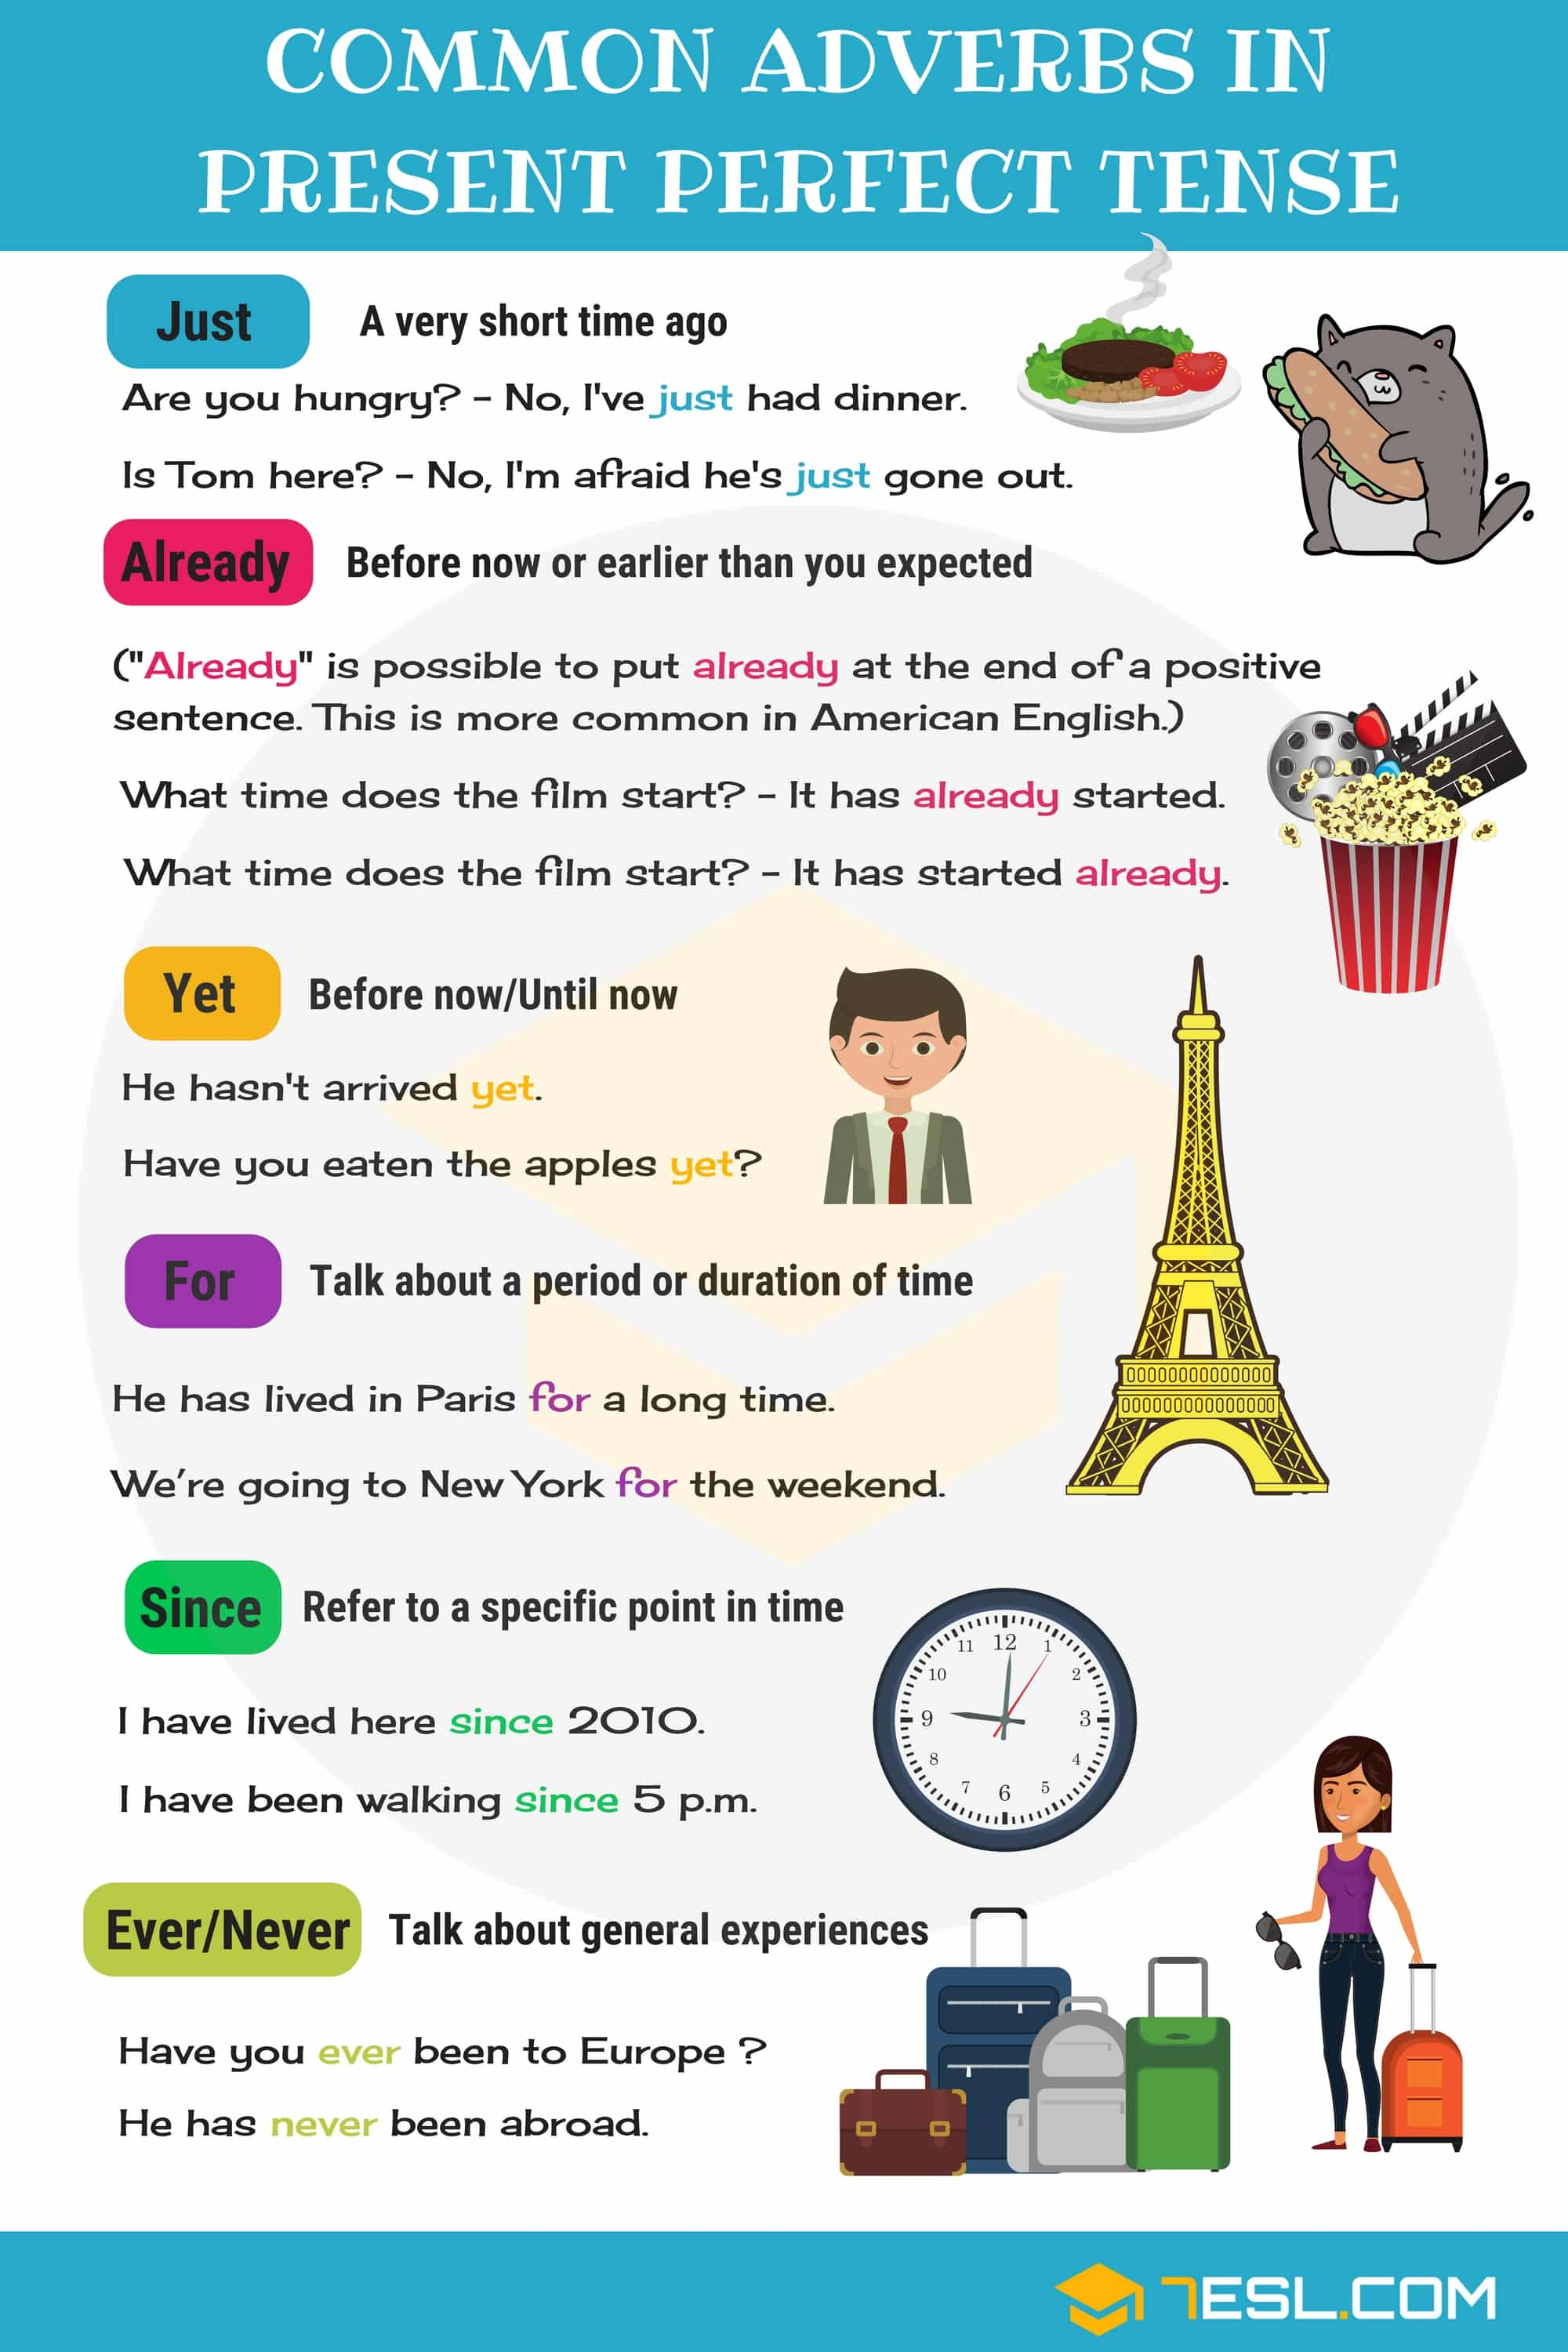 Common Time Adverbs Used with the Present Perfect Tense